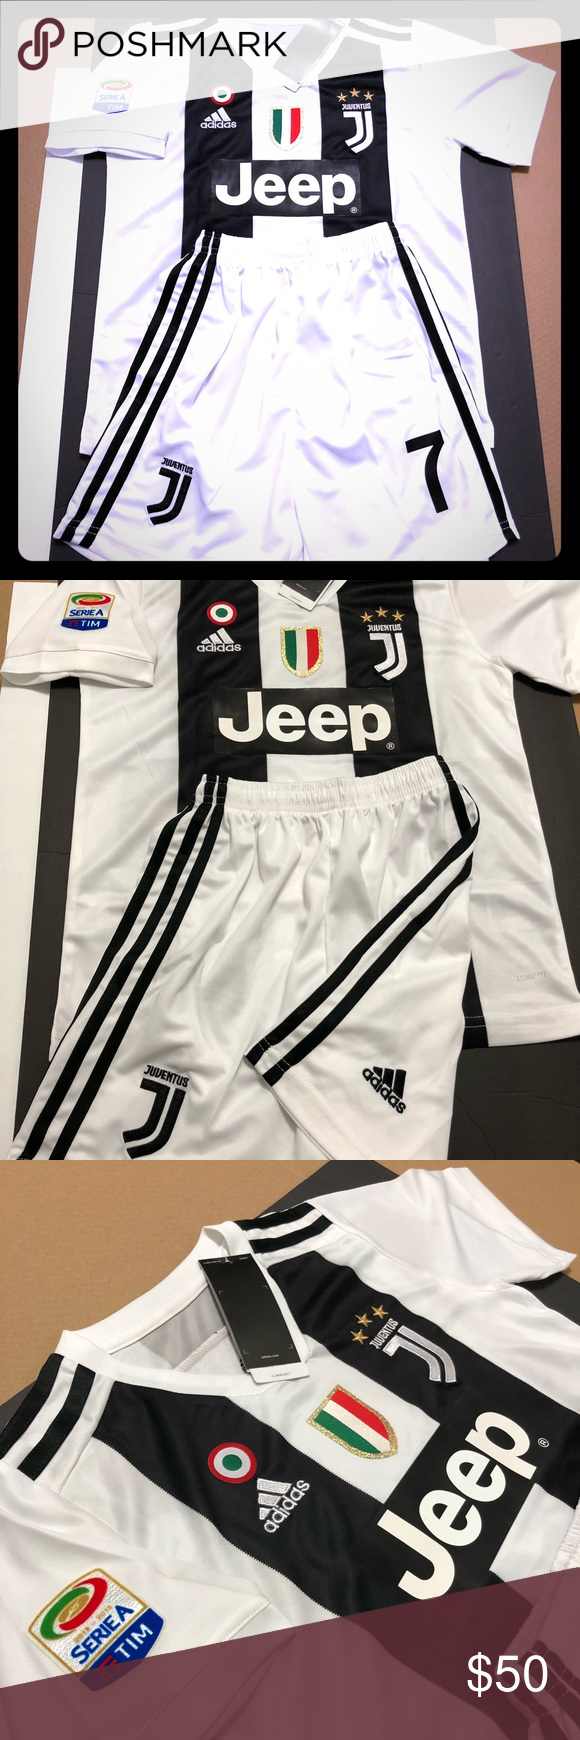 brand new 1a140 94965 UKSoccershop 2018-19 Juventus Home Mini Kit /(Ronaldo 7/)